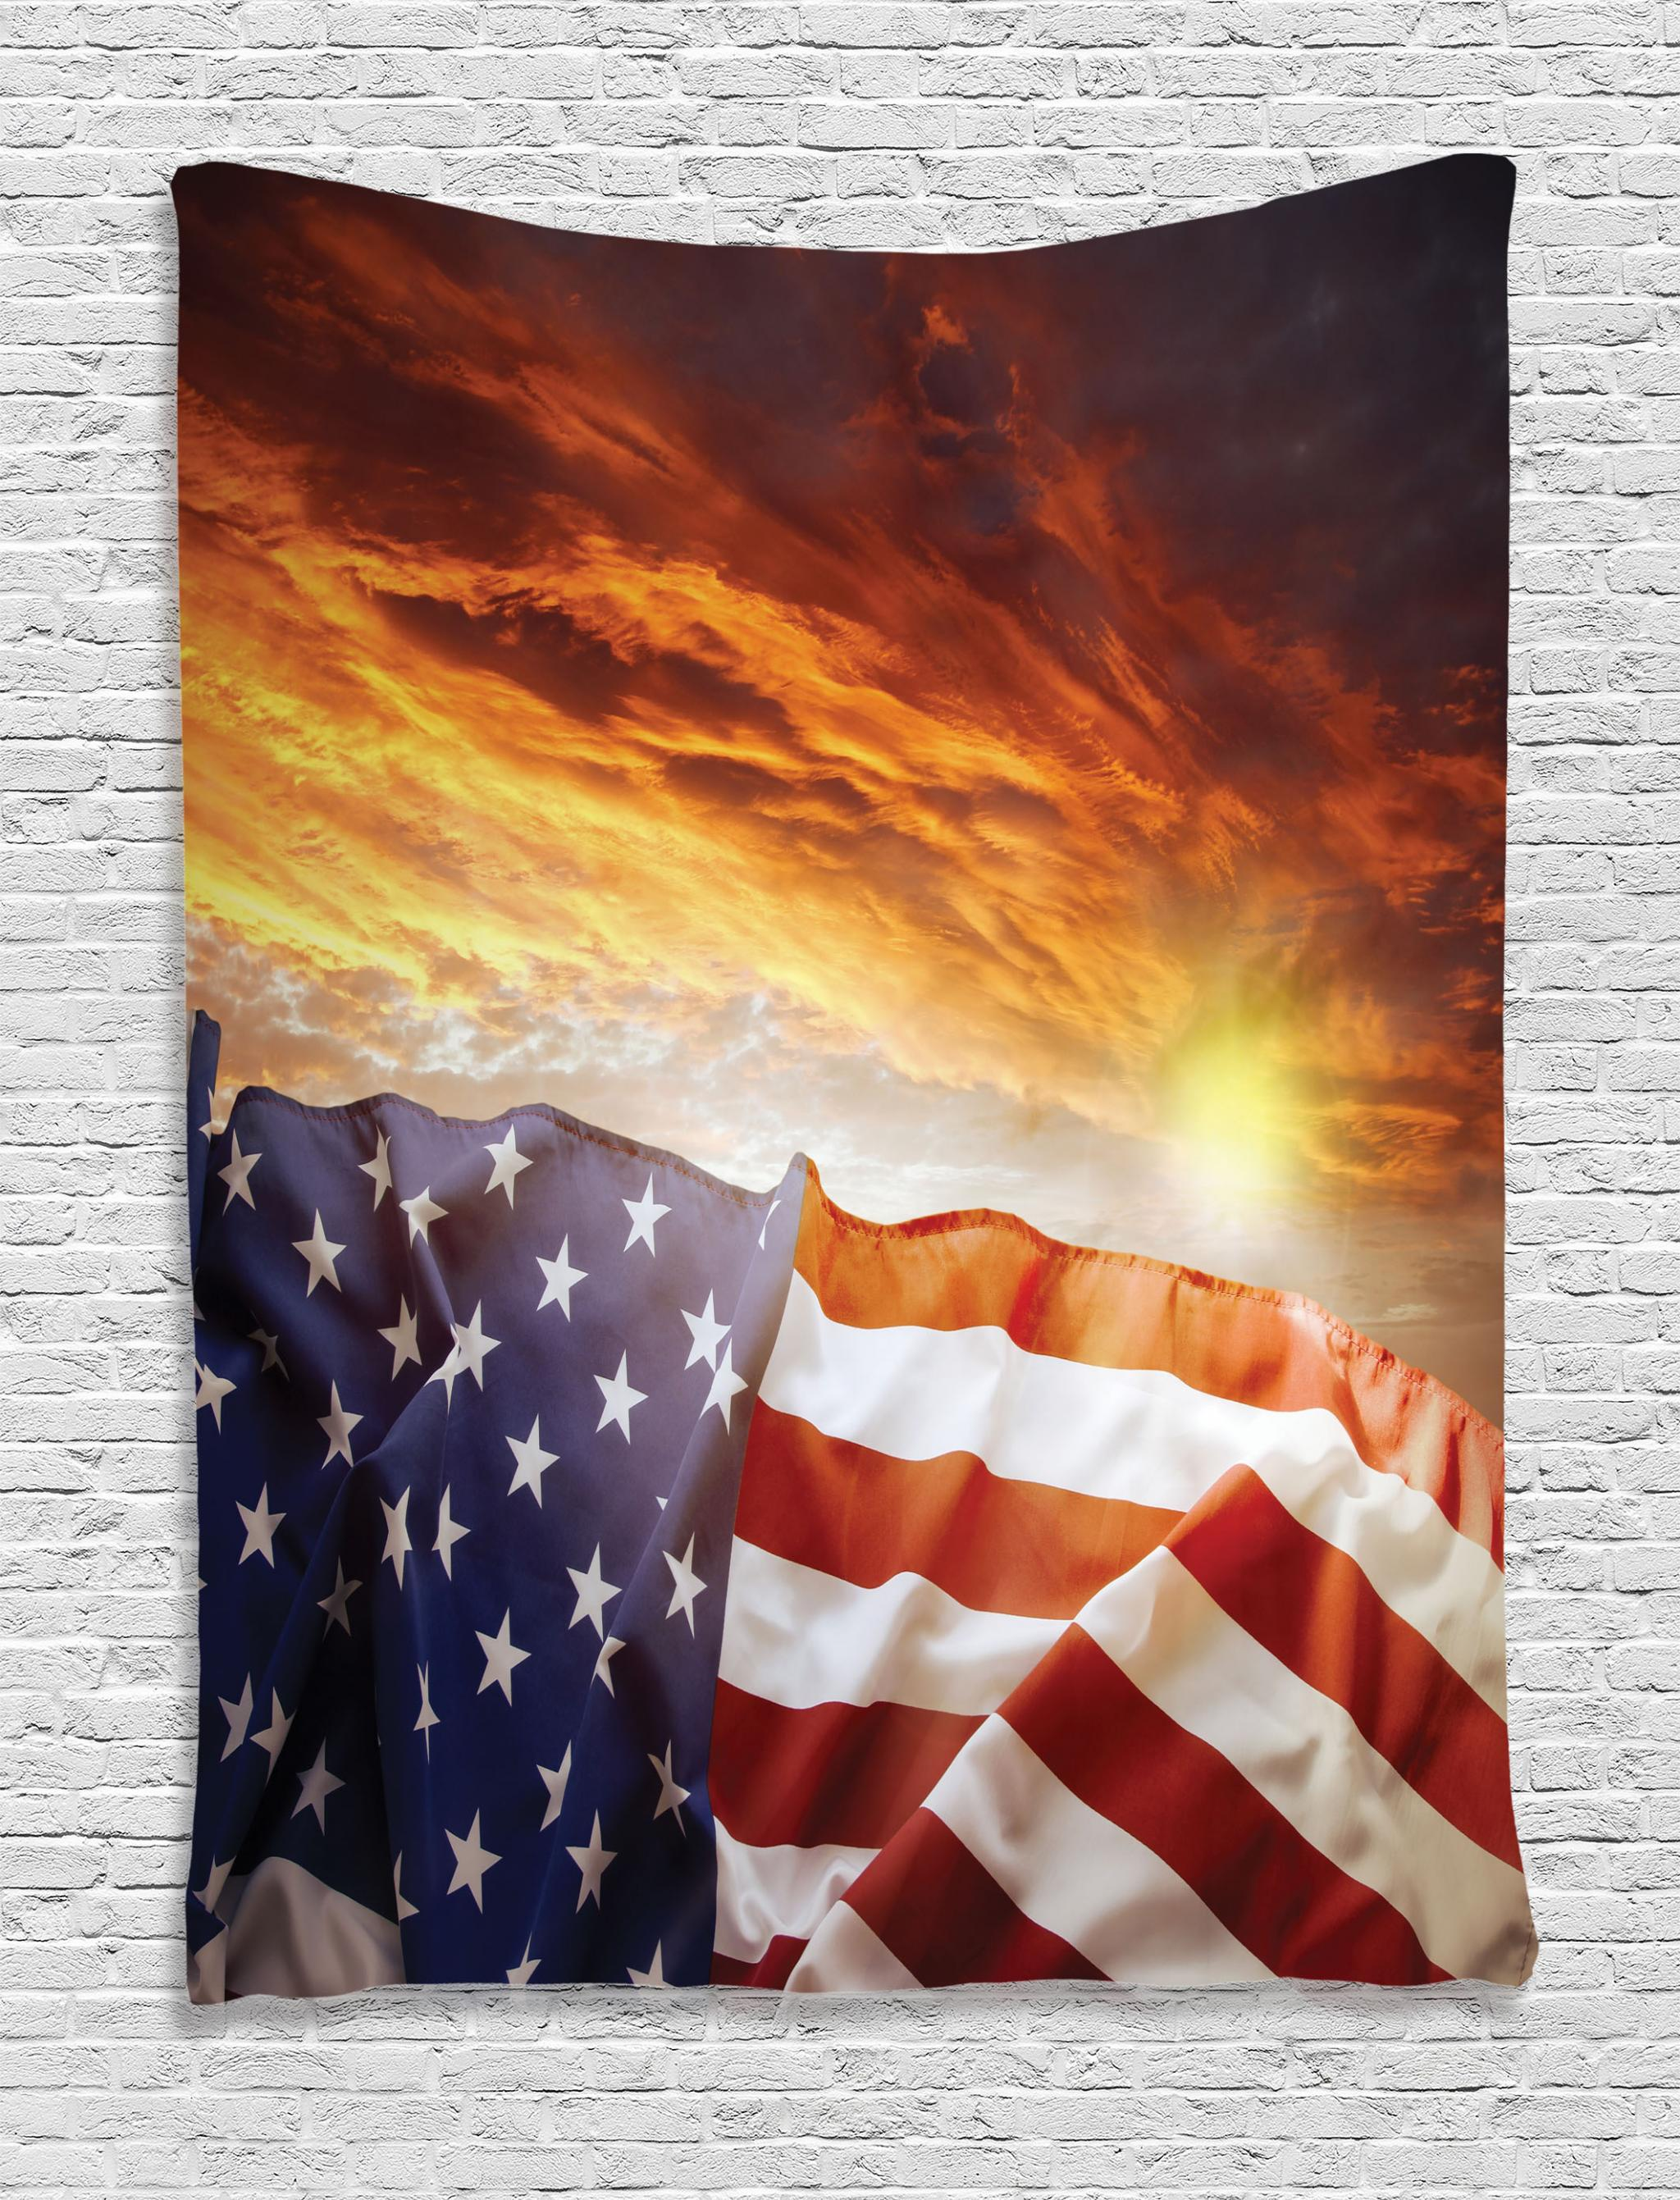 American Flag Tapestry, Flag In Front Of Sunset Sky With Horizon America  Union Idyllic Photograph, Wall Hanging For Bedroom Living Room Dorm Decor,  ...